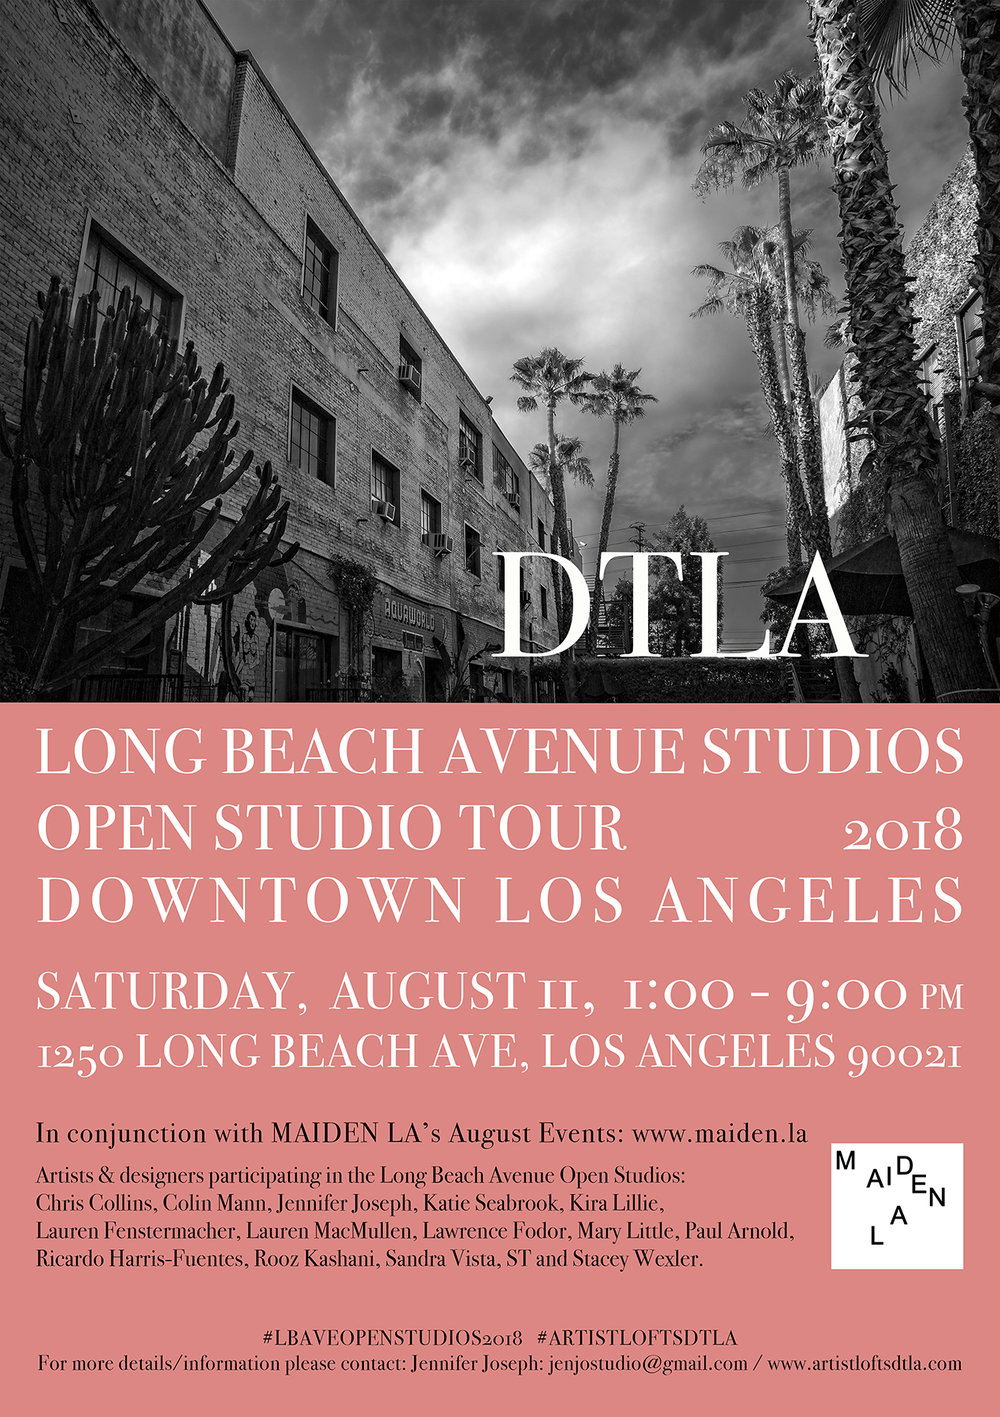 2018-08_LBAL_Open_Studios_Announcement_Generic_01Final_D.jpg